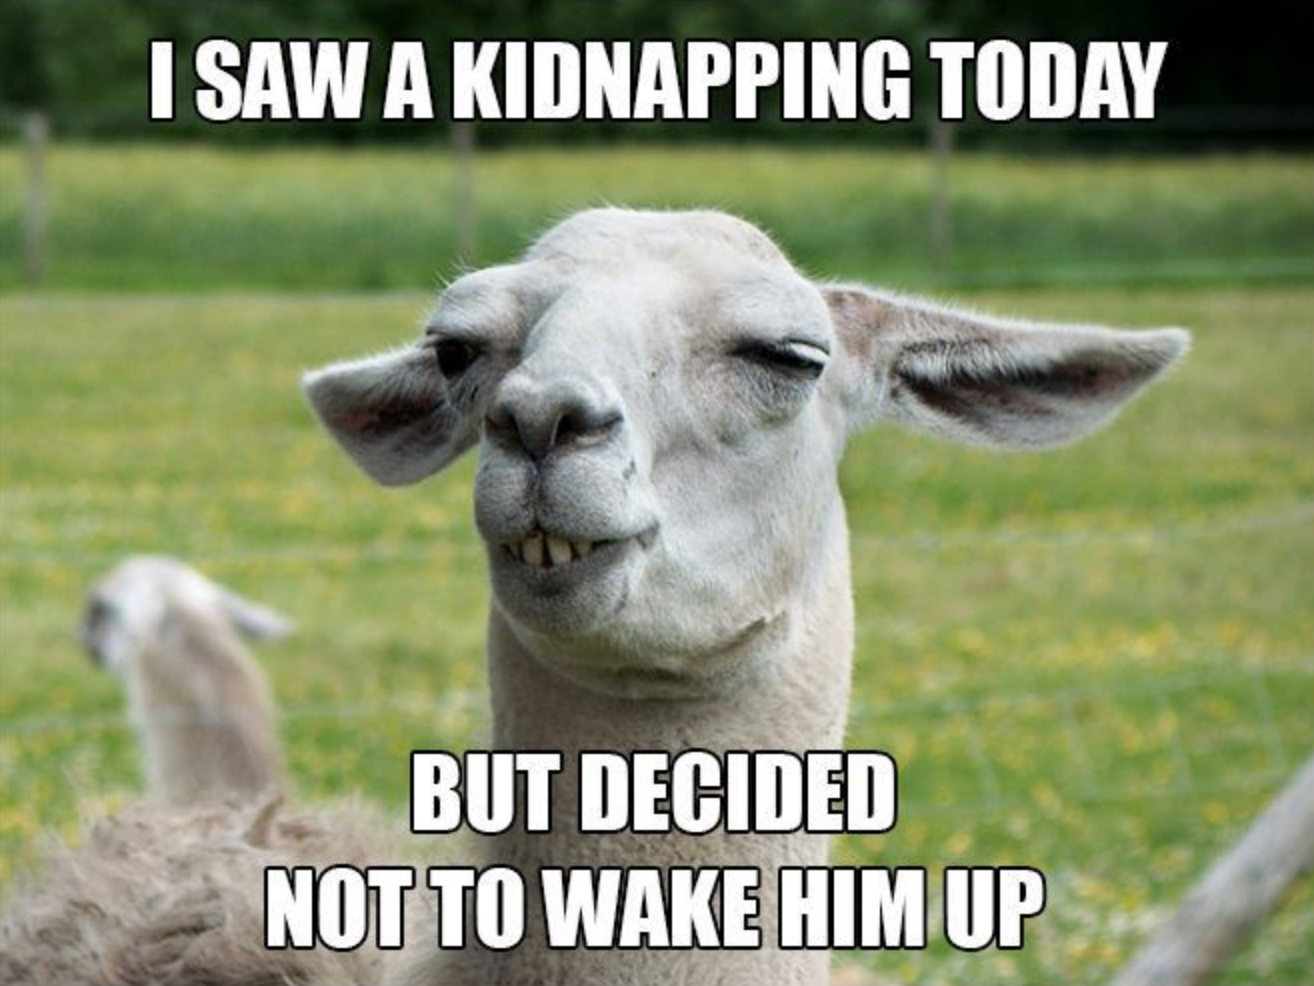 lama - clever - saw kidnapping - animal meme | Memes ...